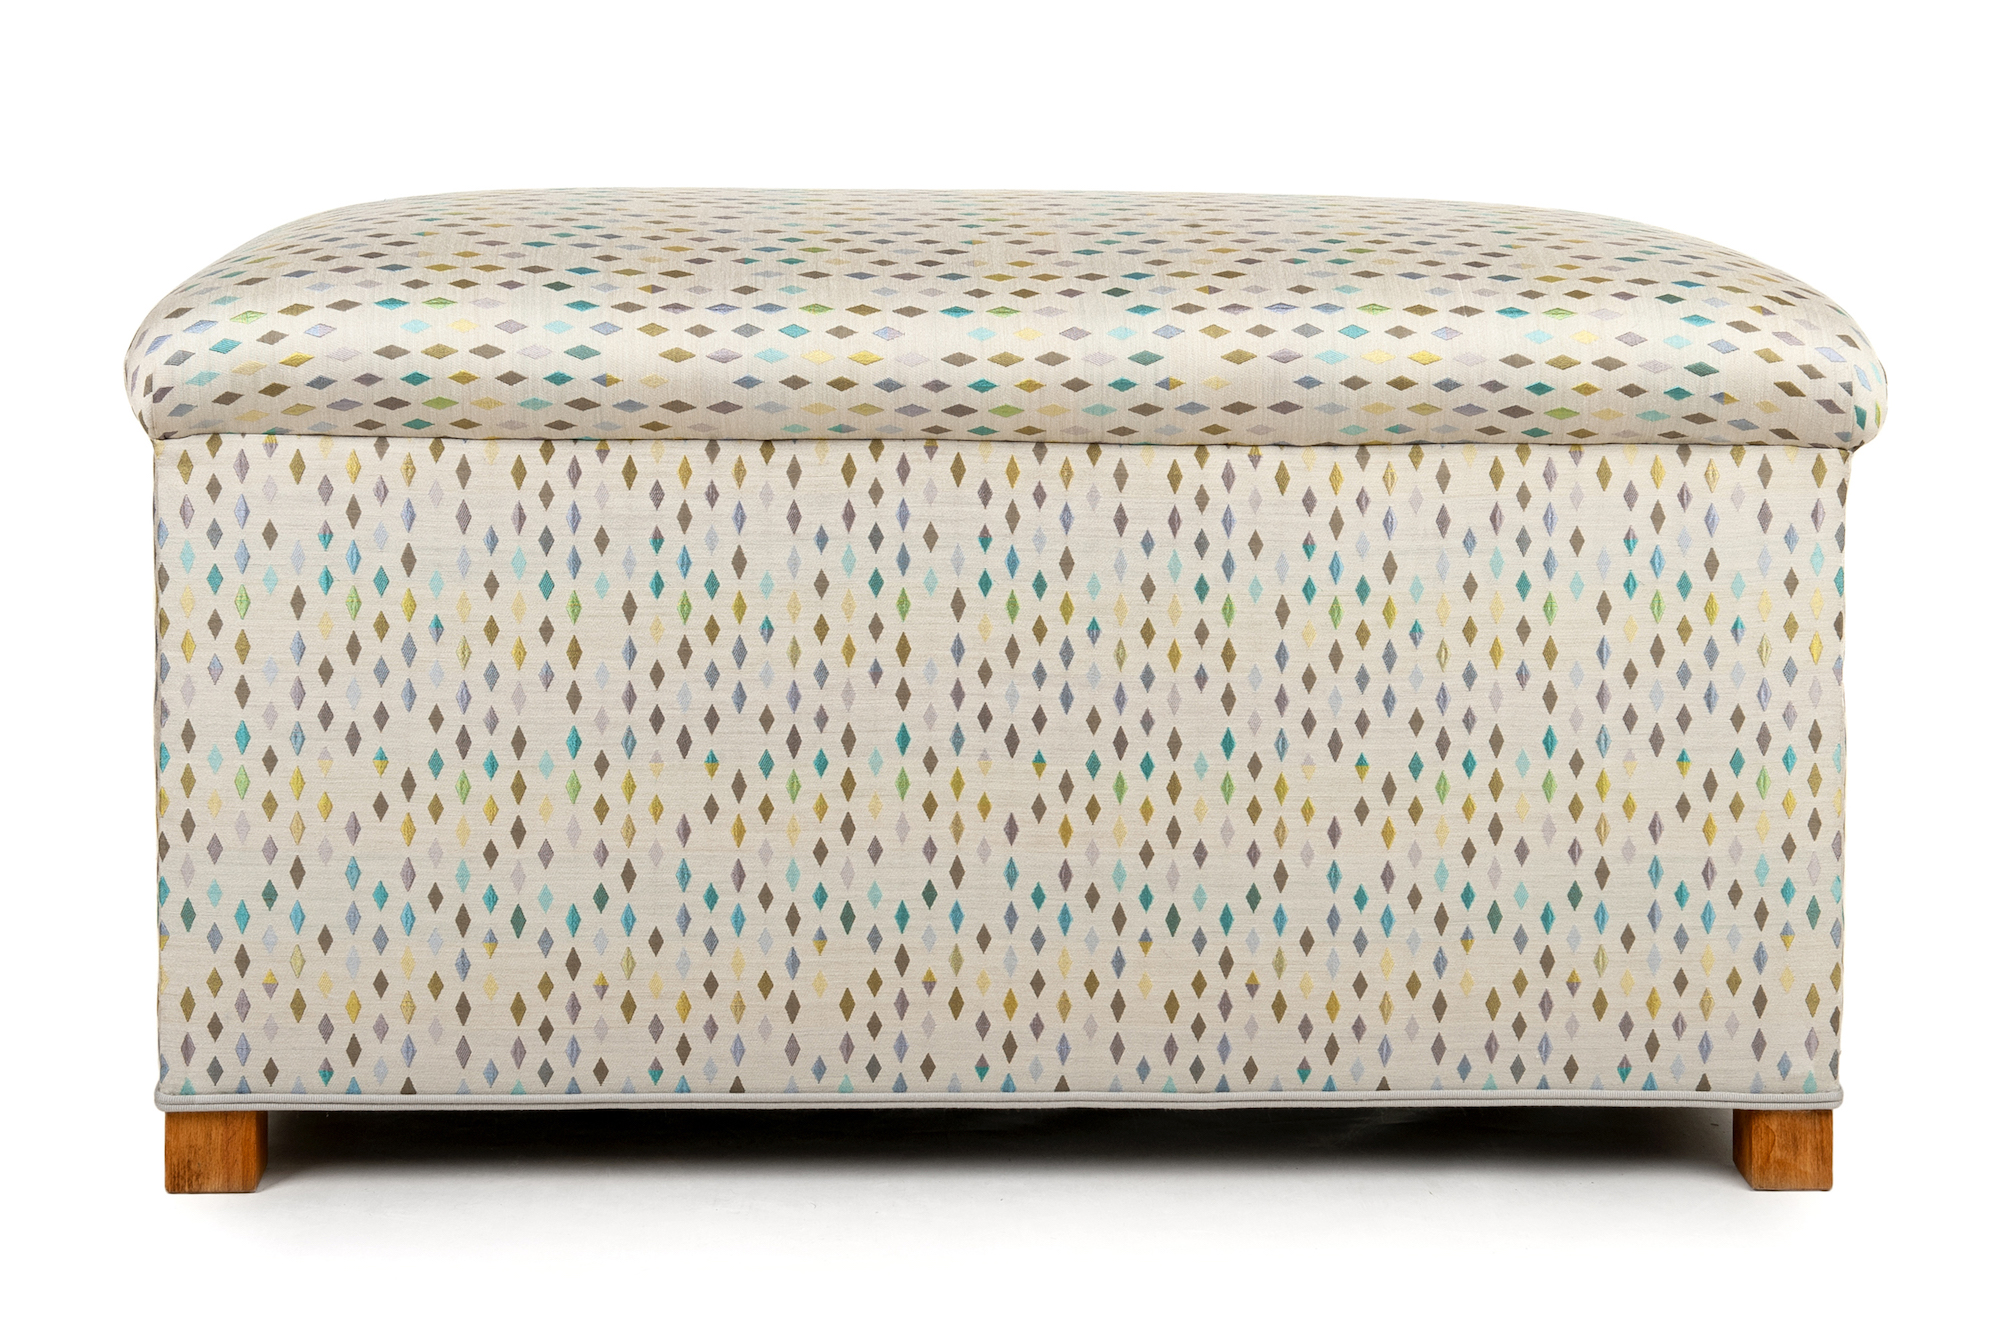 Bedroom Ottoman with Double Piping Trim